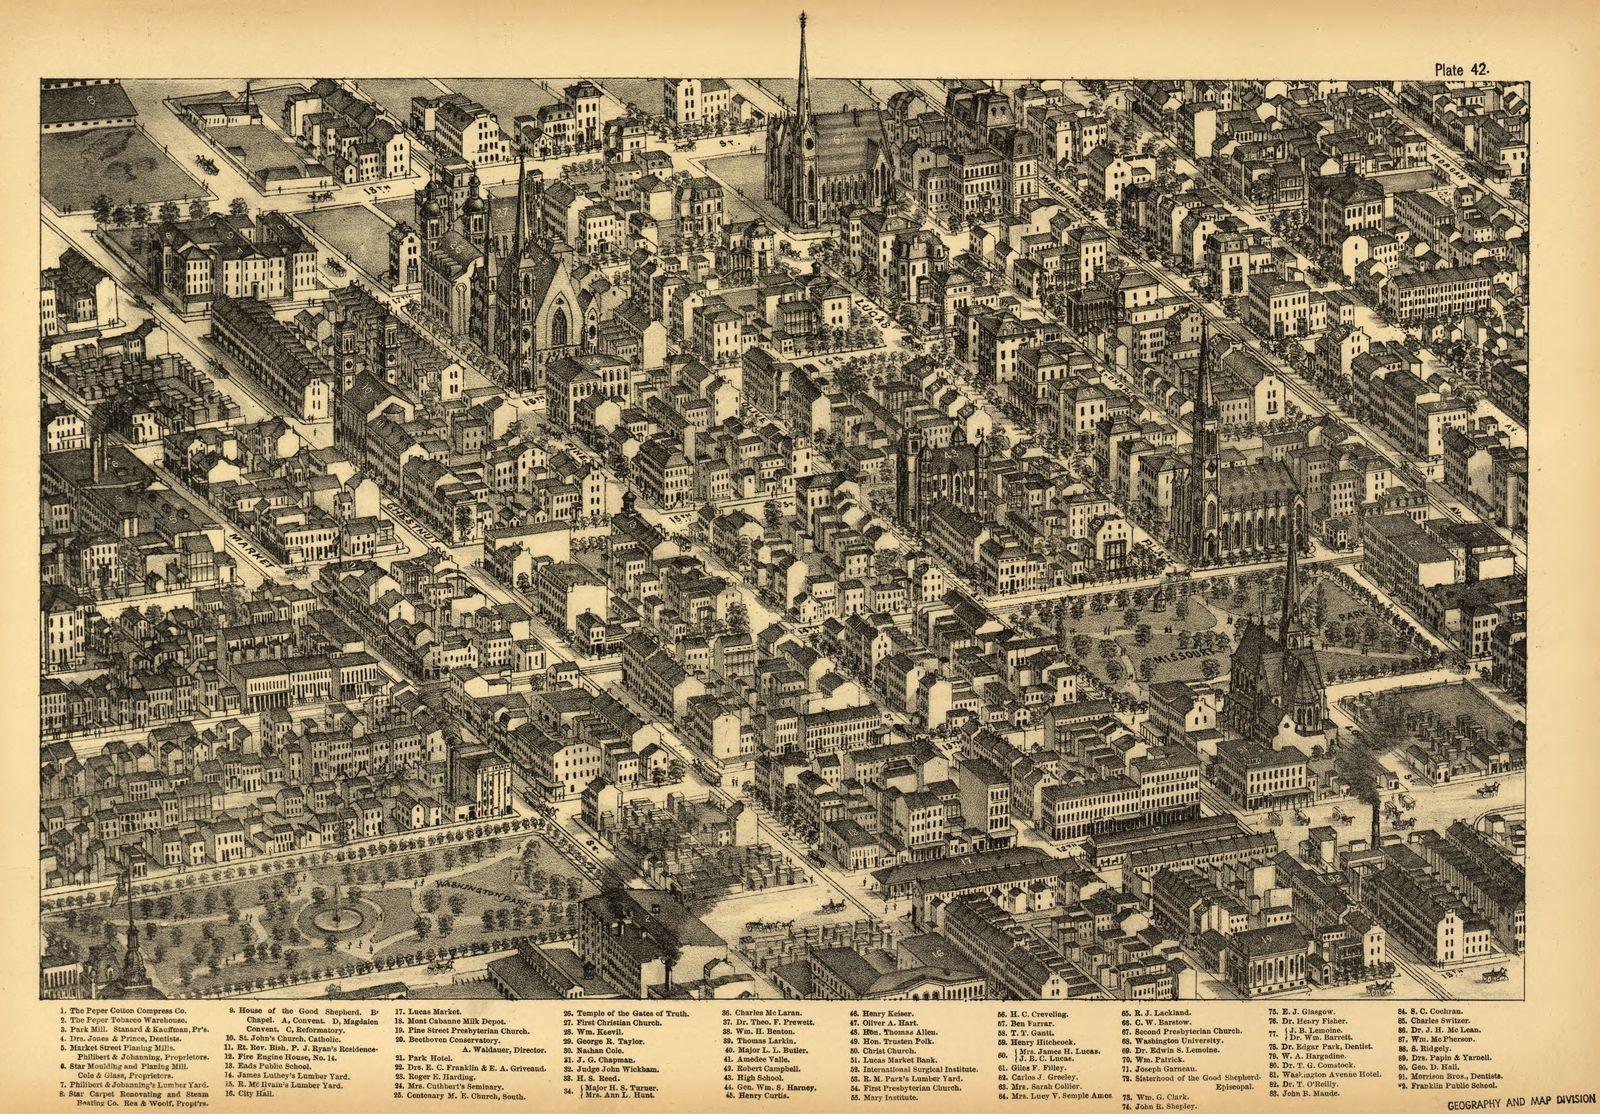 Pictorial St. Louis, the great metropolis of the Mississippi valley; a topographical survey drawn in perspective A.D. 1875,